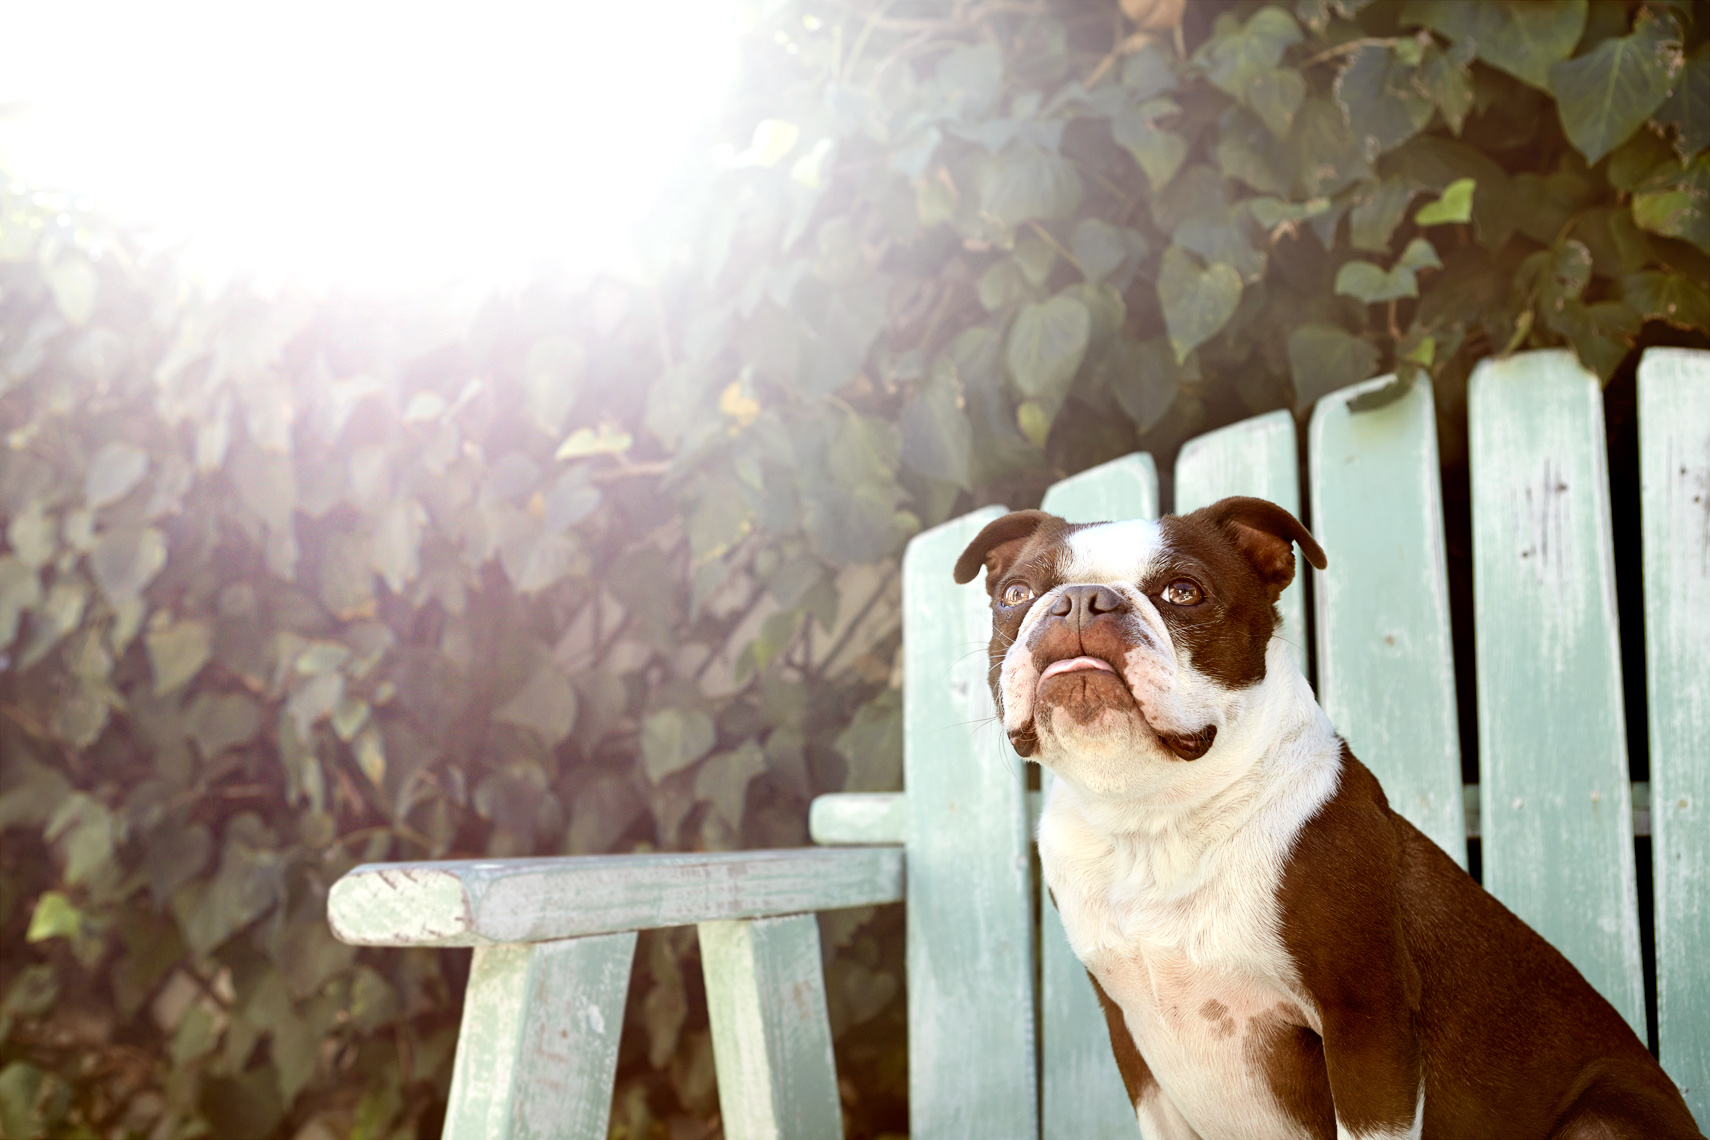 Boston Terrier in the sun